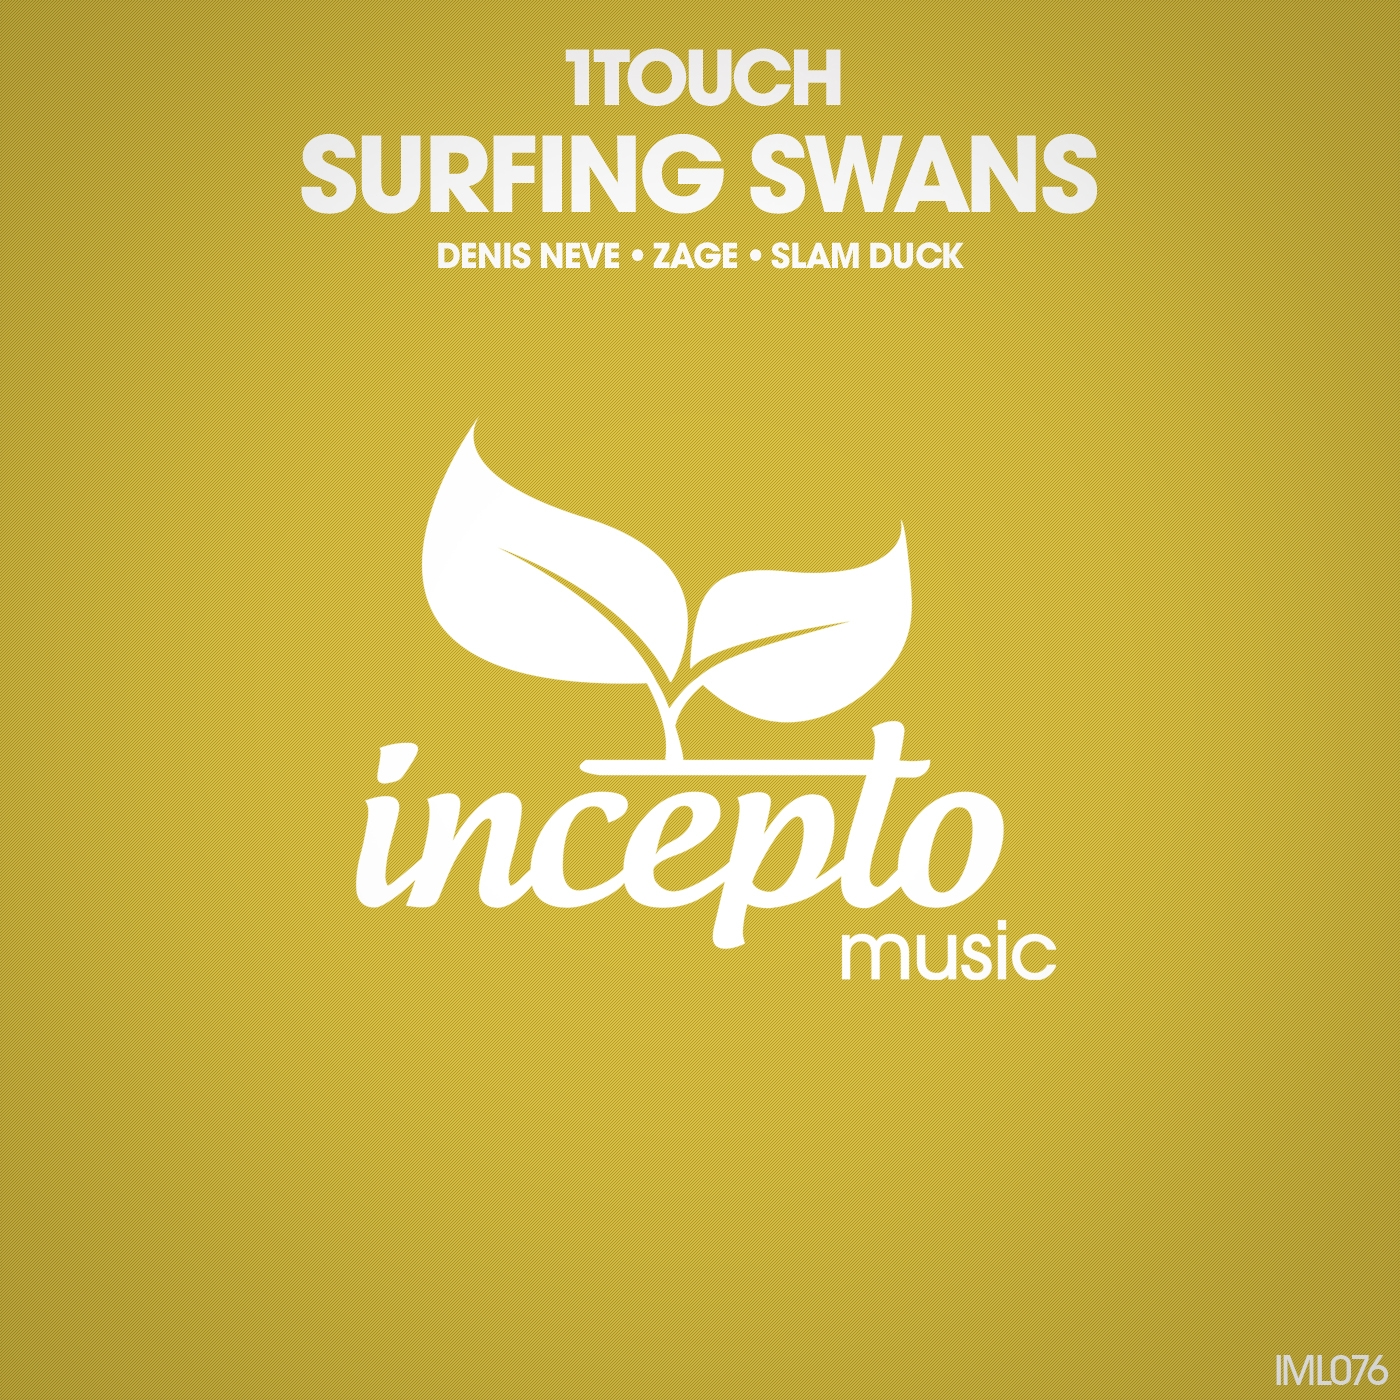 1Touch - Surfing Swans (Zage Remix)